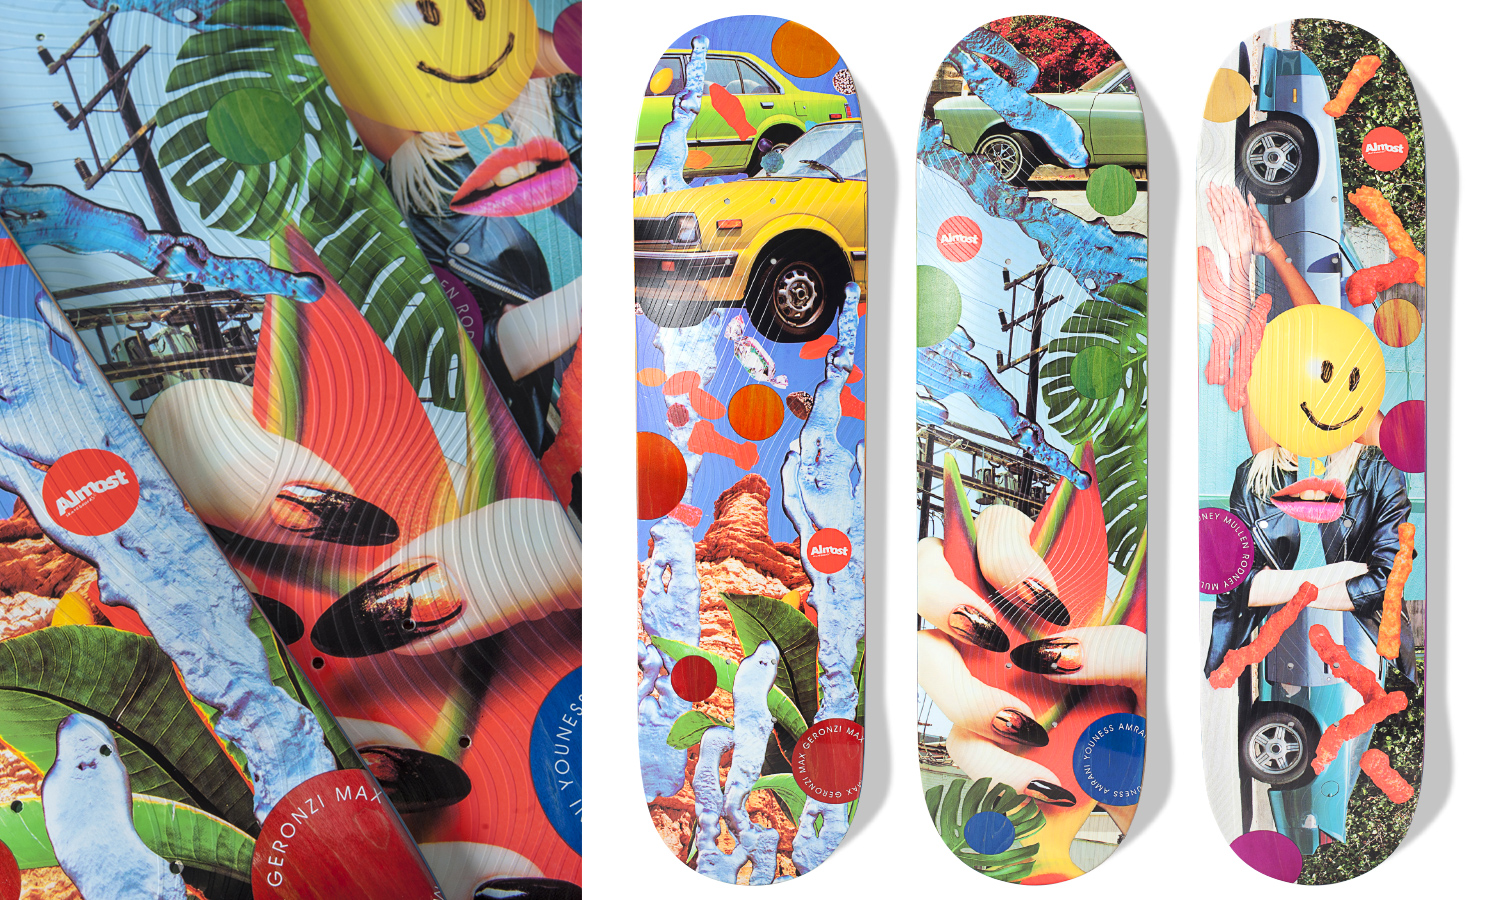 Almost_Skateboards_nonsense_Max_youness_Mullen_decks.jpg